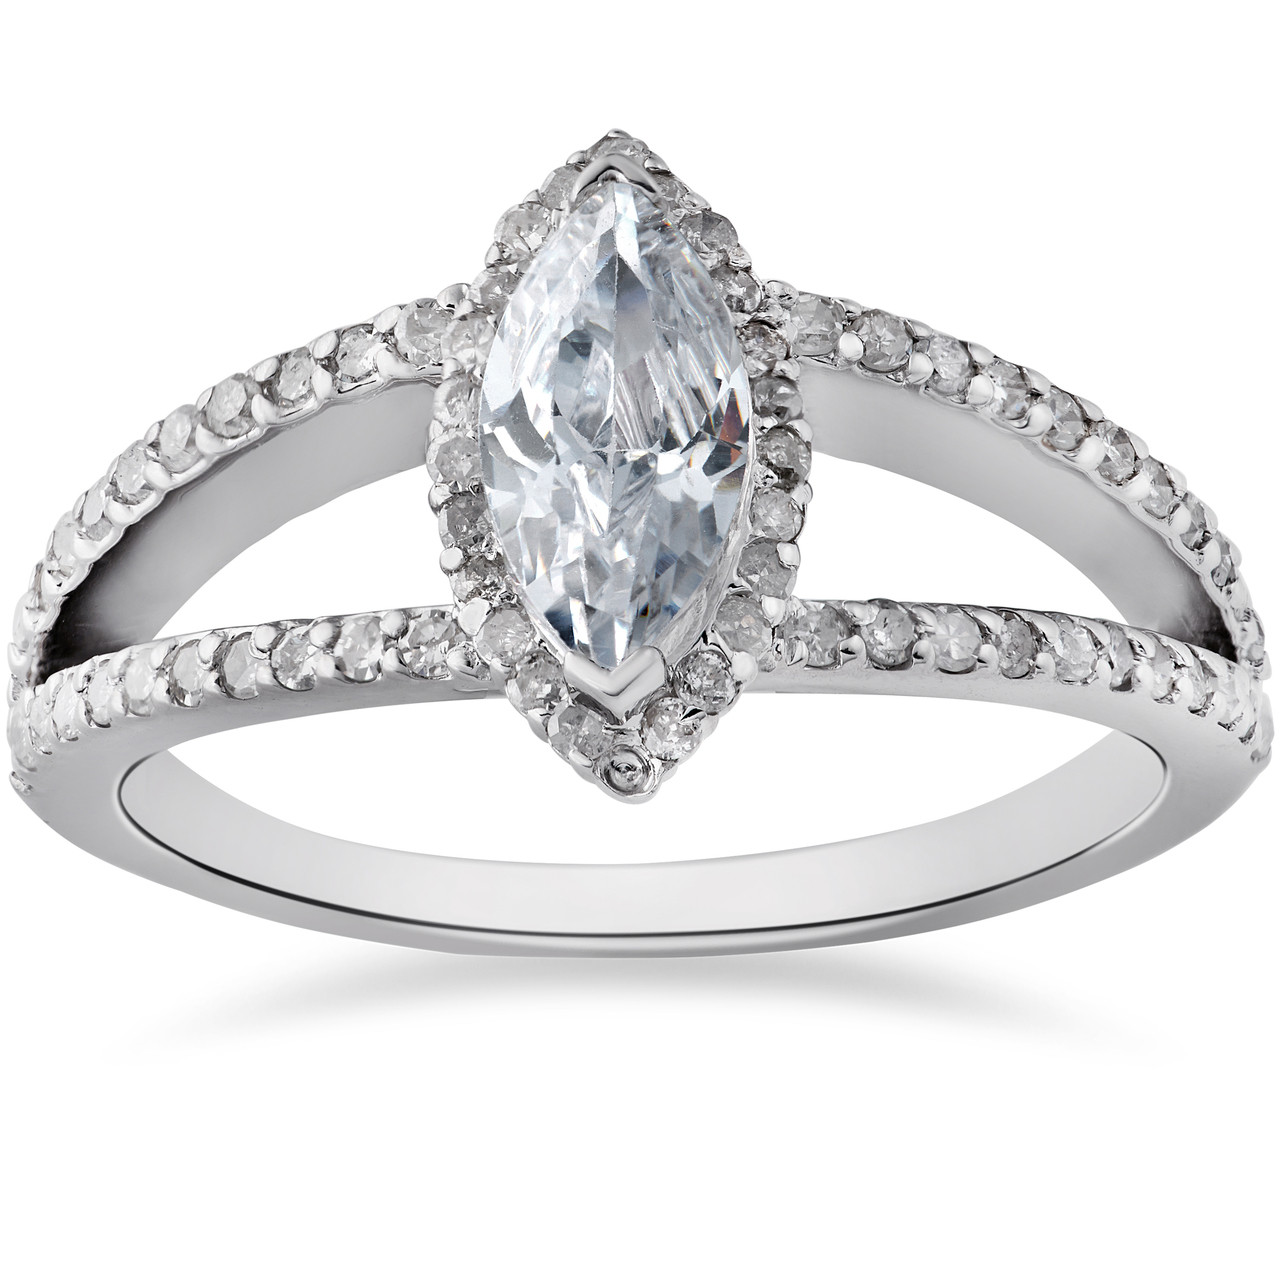 stones round shank gold tw in white and rings diamond head engagement split p store halo ring platinum side with